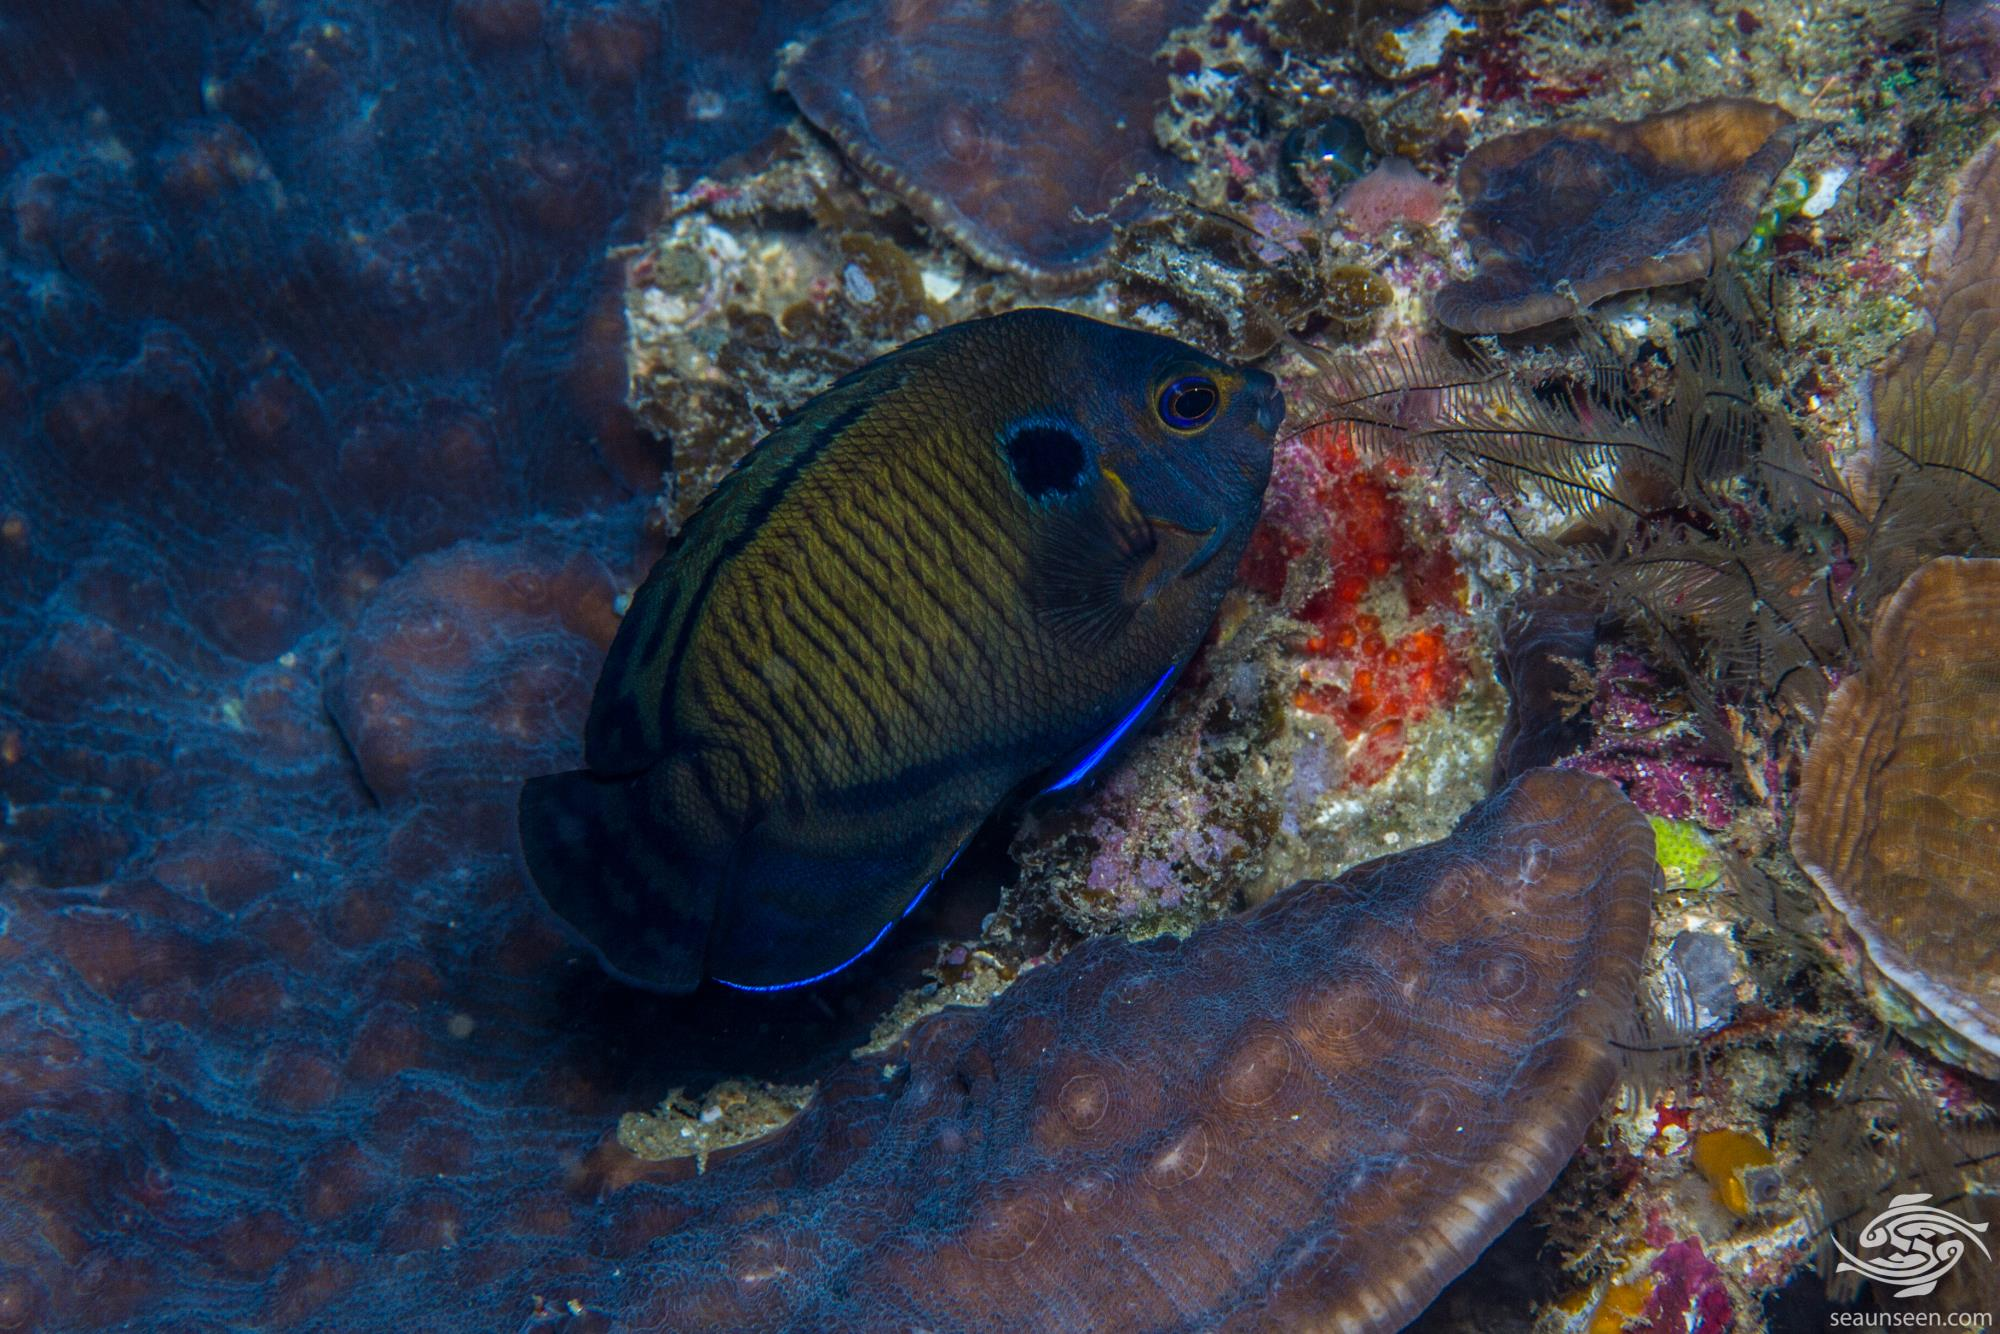 Dusky Angelfish (Centropyge multispinis)is also known as the Bluefin Angelfish, the Brown Pygmy Angelfish,Dusky Cherub and Multispined Angelfish